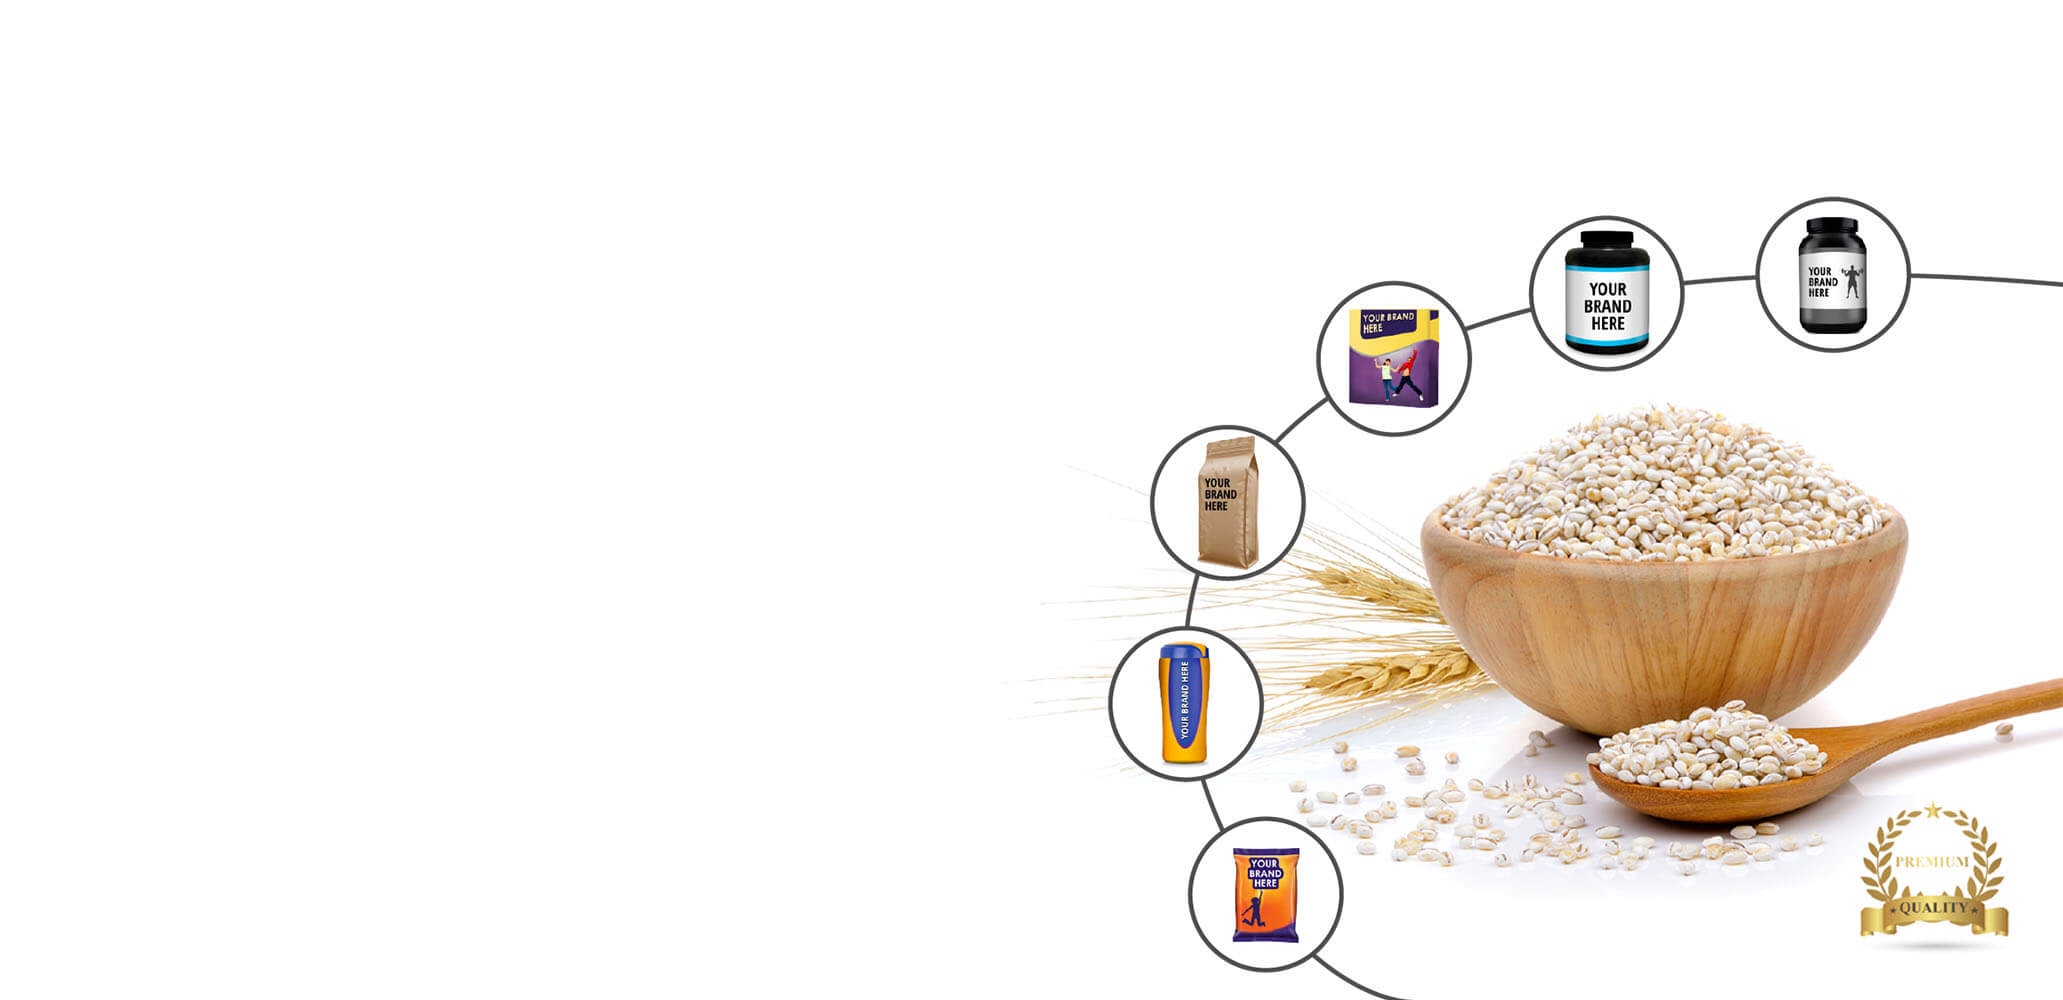 Malt Based Foods, Sports Nutrition, Protein Powder by Private Labelling  and Contract Food Manufacturing Companies India.